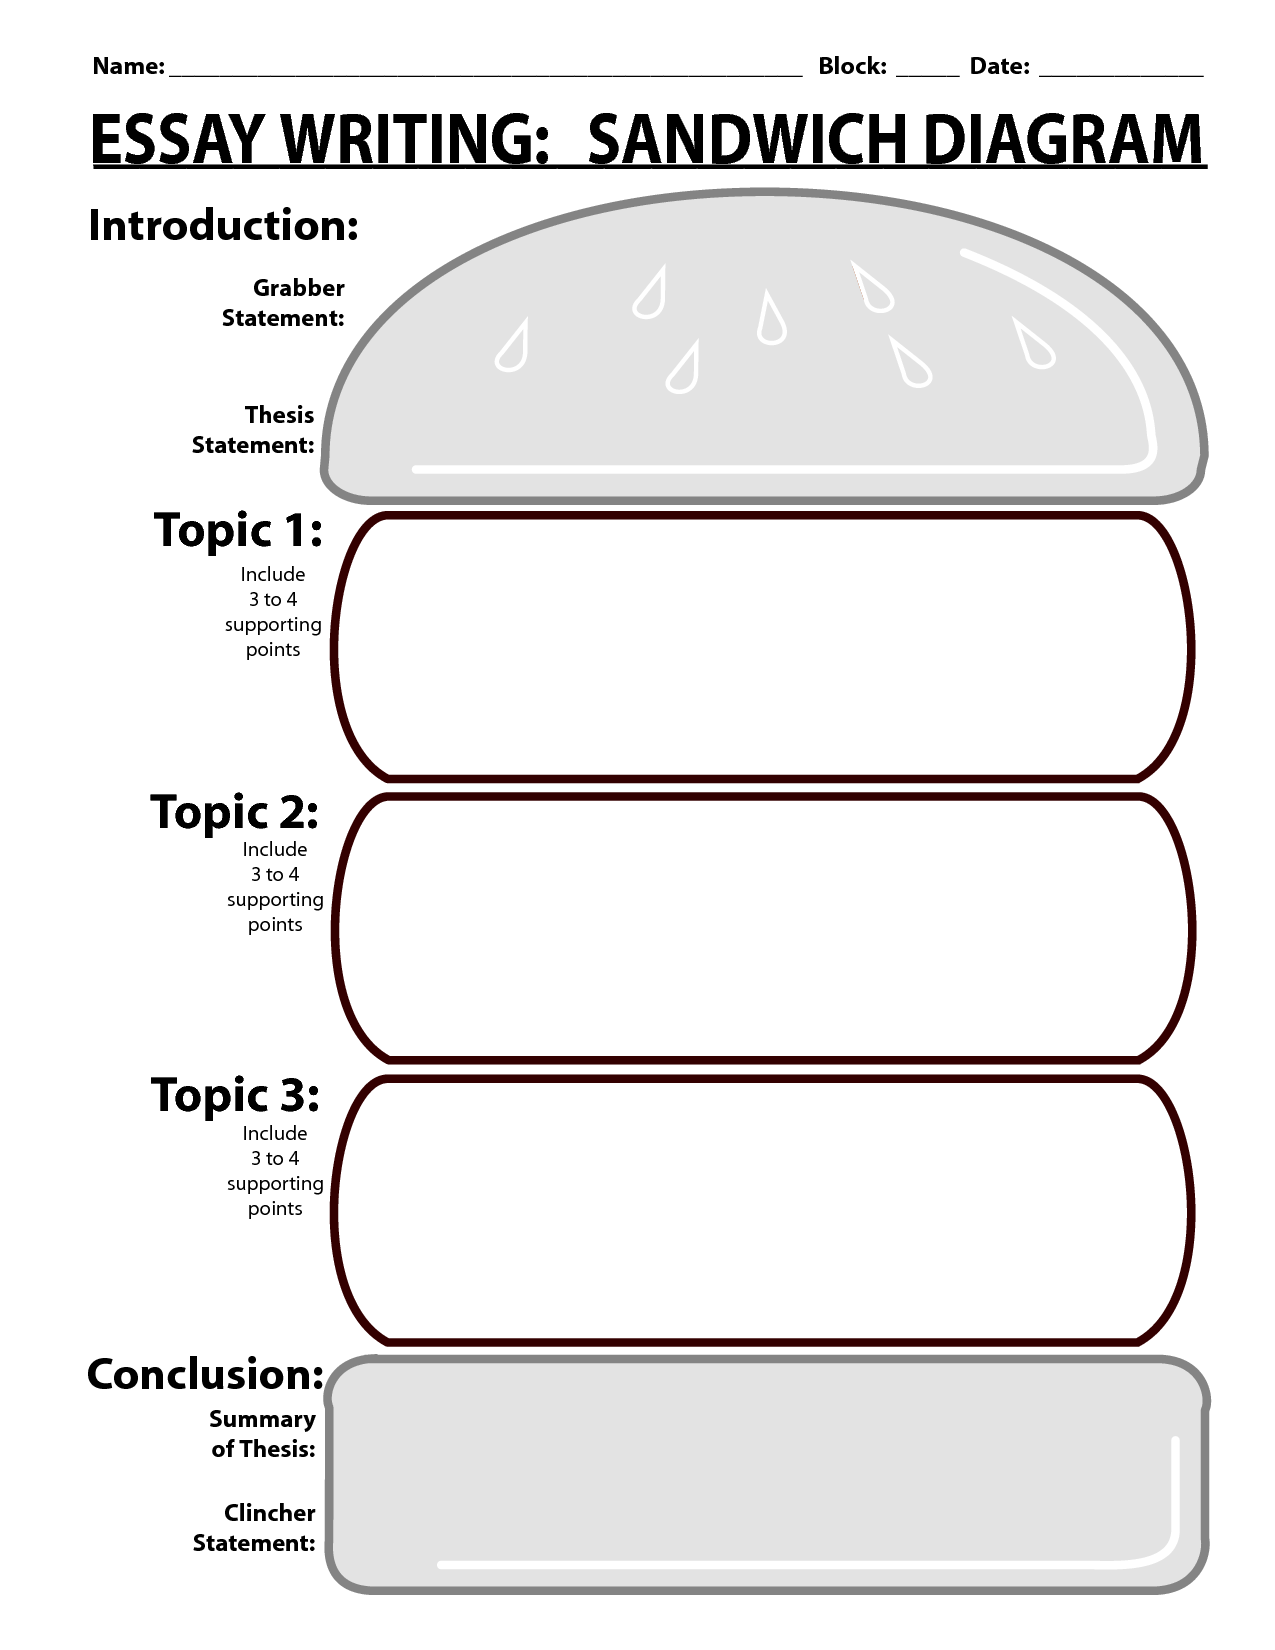 Sandwich Writing Template | ESSAY WRITING SANDWICH DIAGRAM - PDF